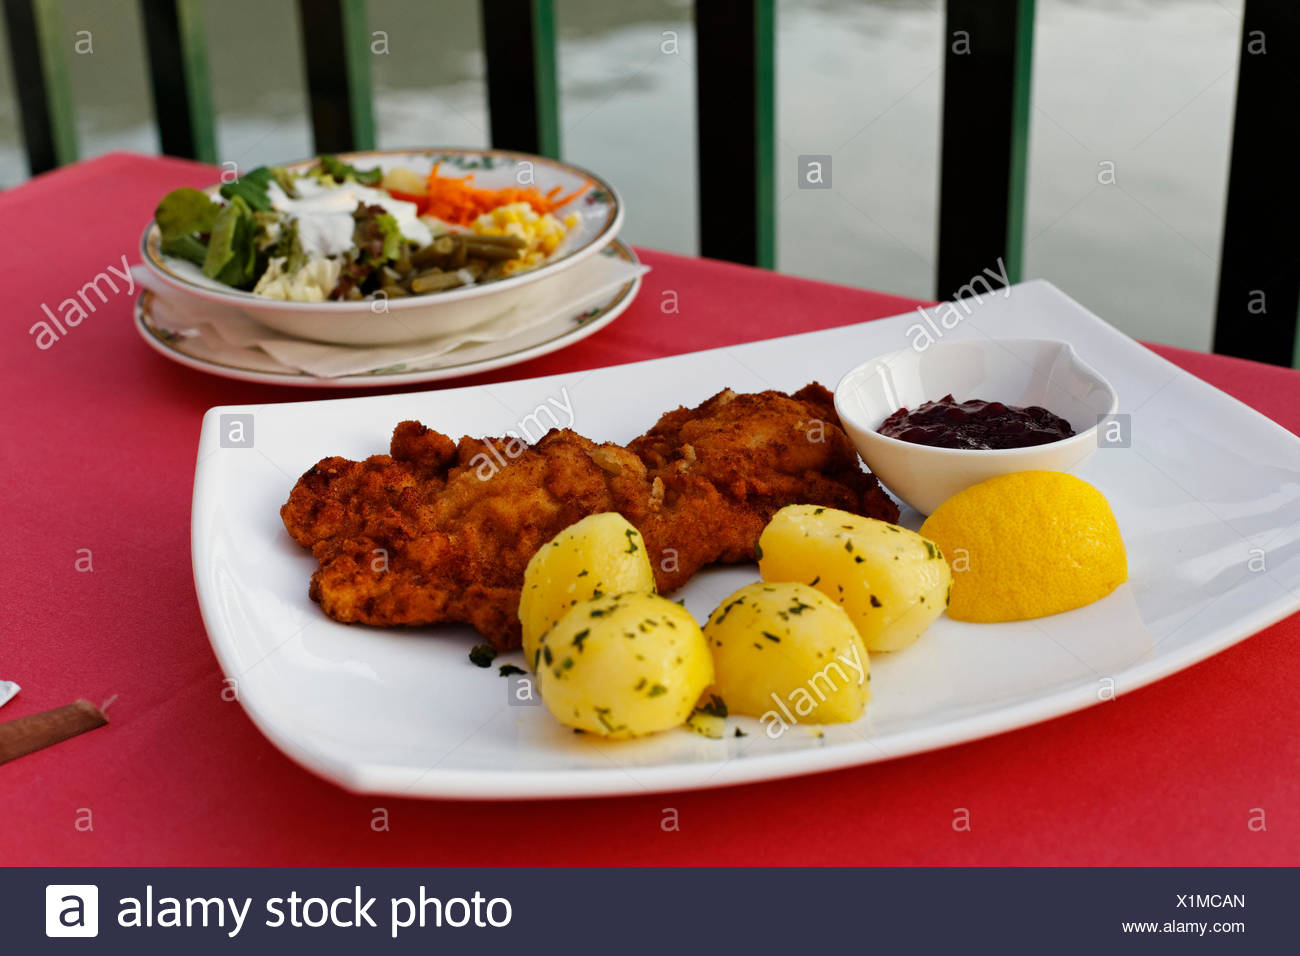 Schnitzel Restaurant Viennese Schnitzel With Potatoes And Salad Terrace Of The